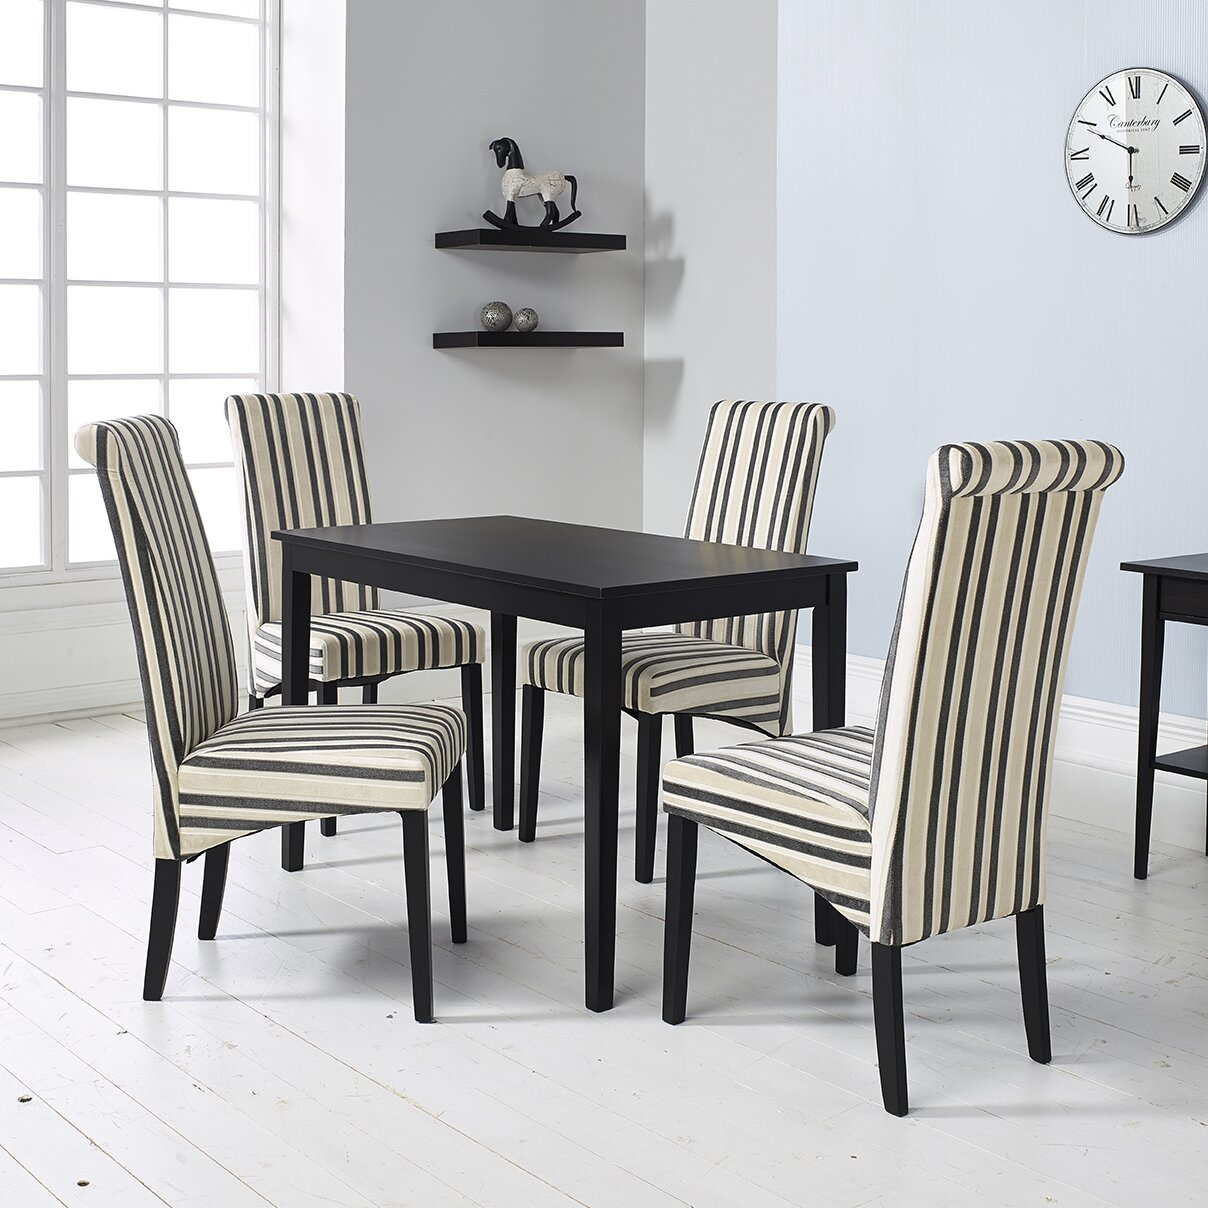 Home Haus Solomon Dining Table And 4 Chairs Reviews Wayfair Uk